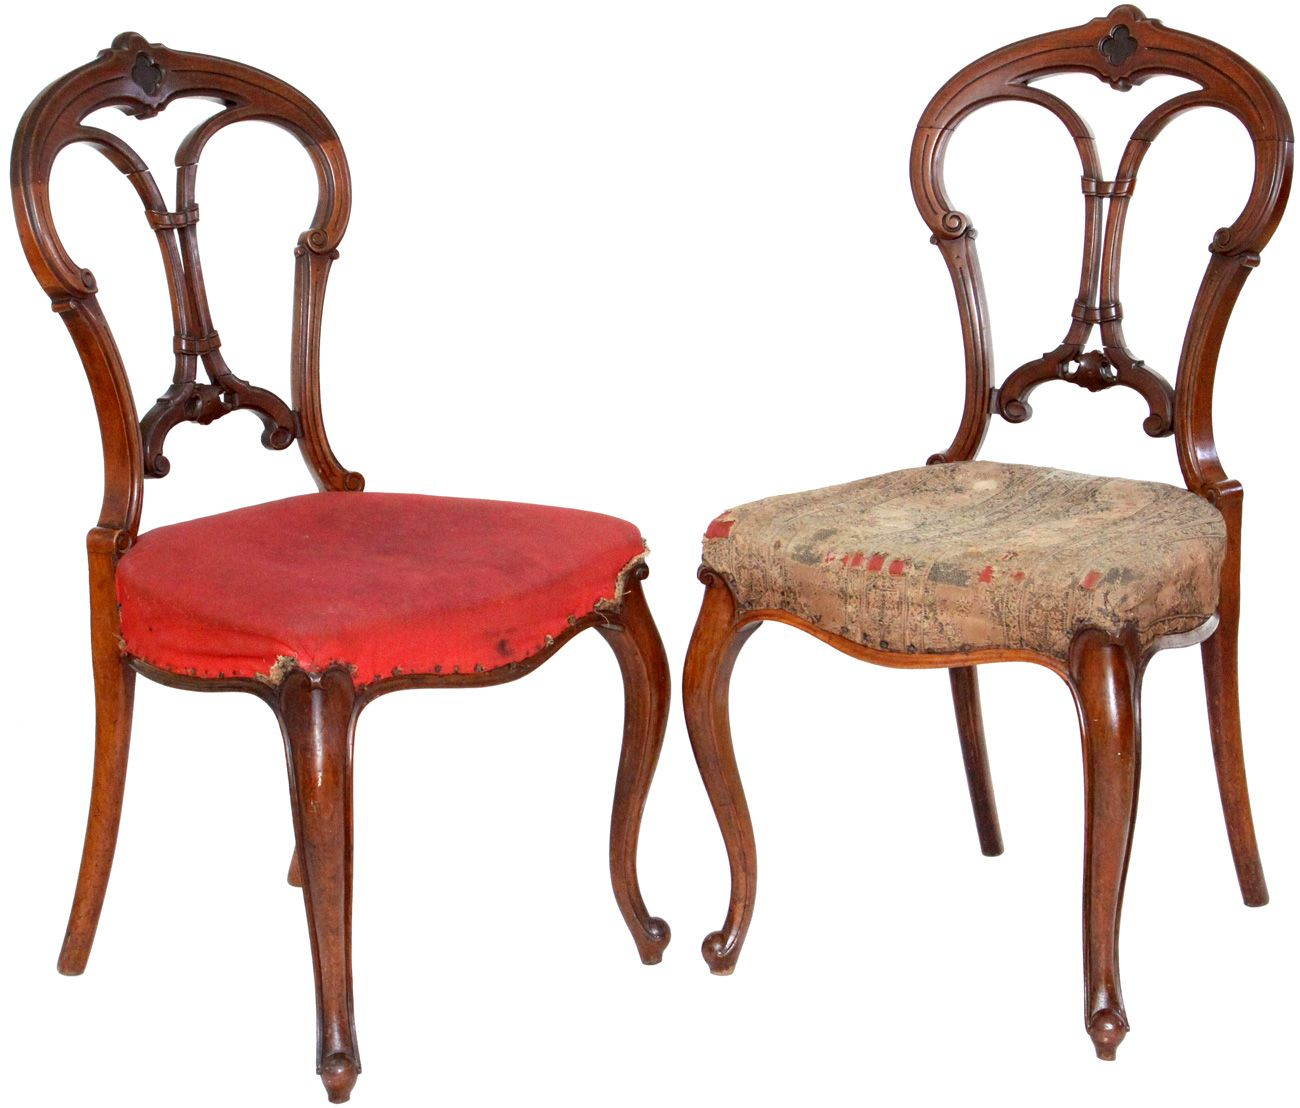 Antique victorian chairs - Antique Furniture Pair Of Antique Victorian Balloon Back Chairs With Carved Back